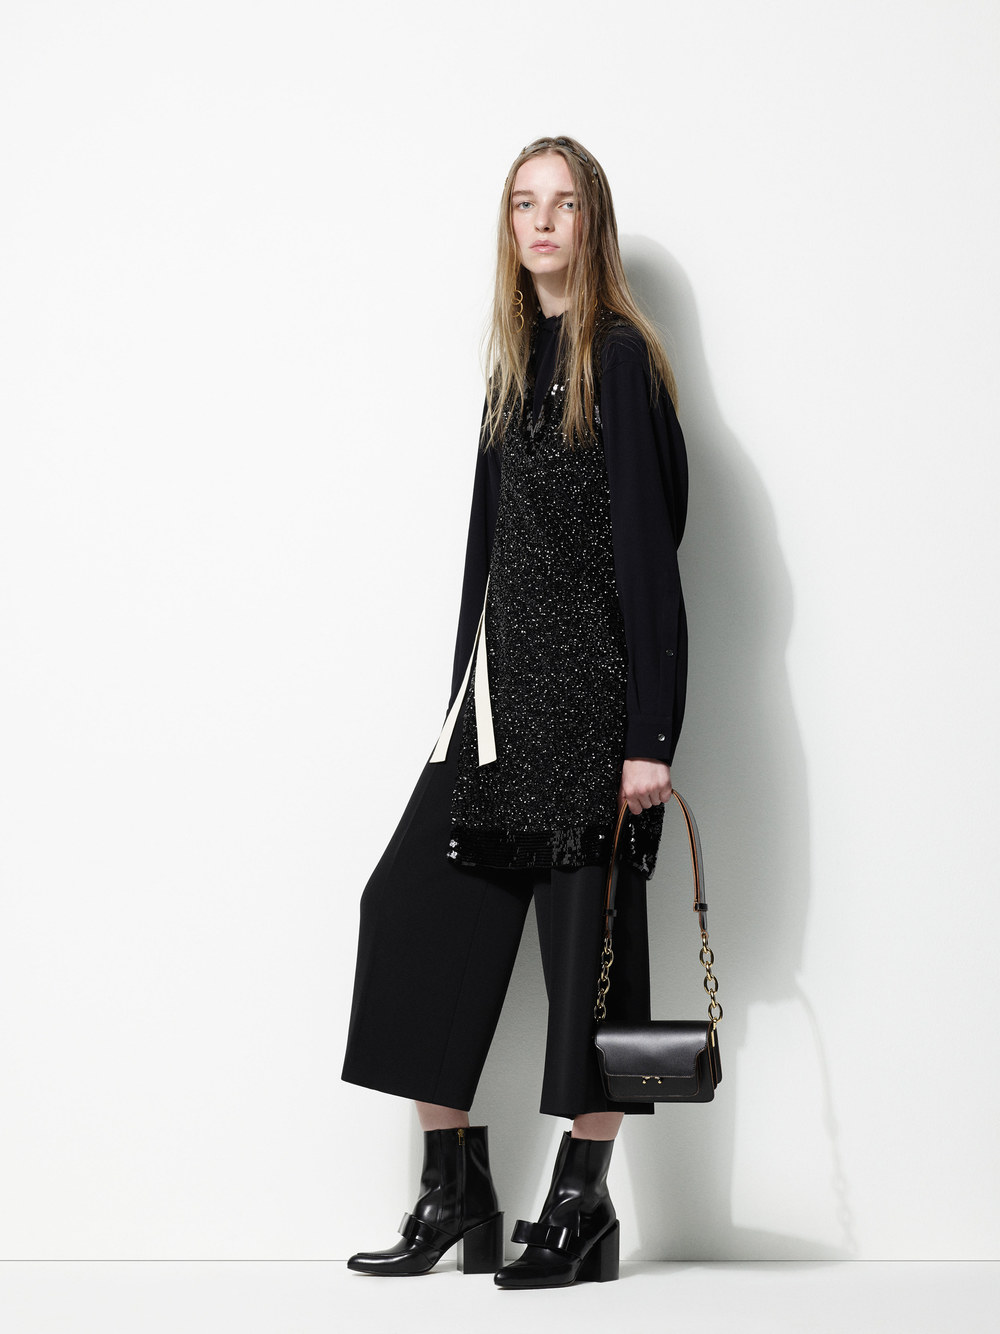 marni-pre-fall-2016-lookbook-23.jpg